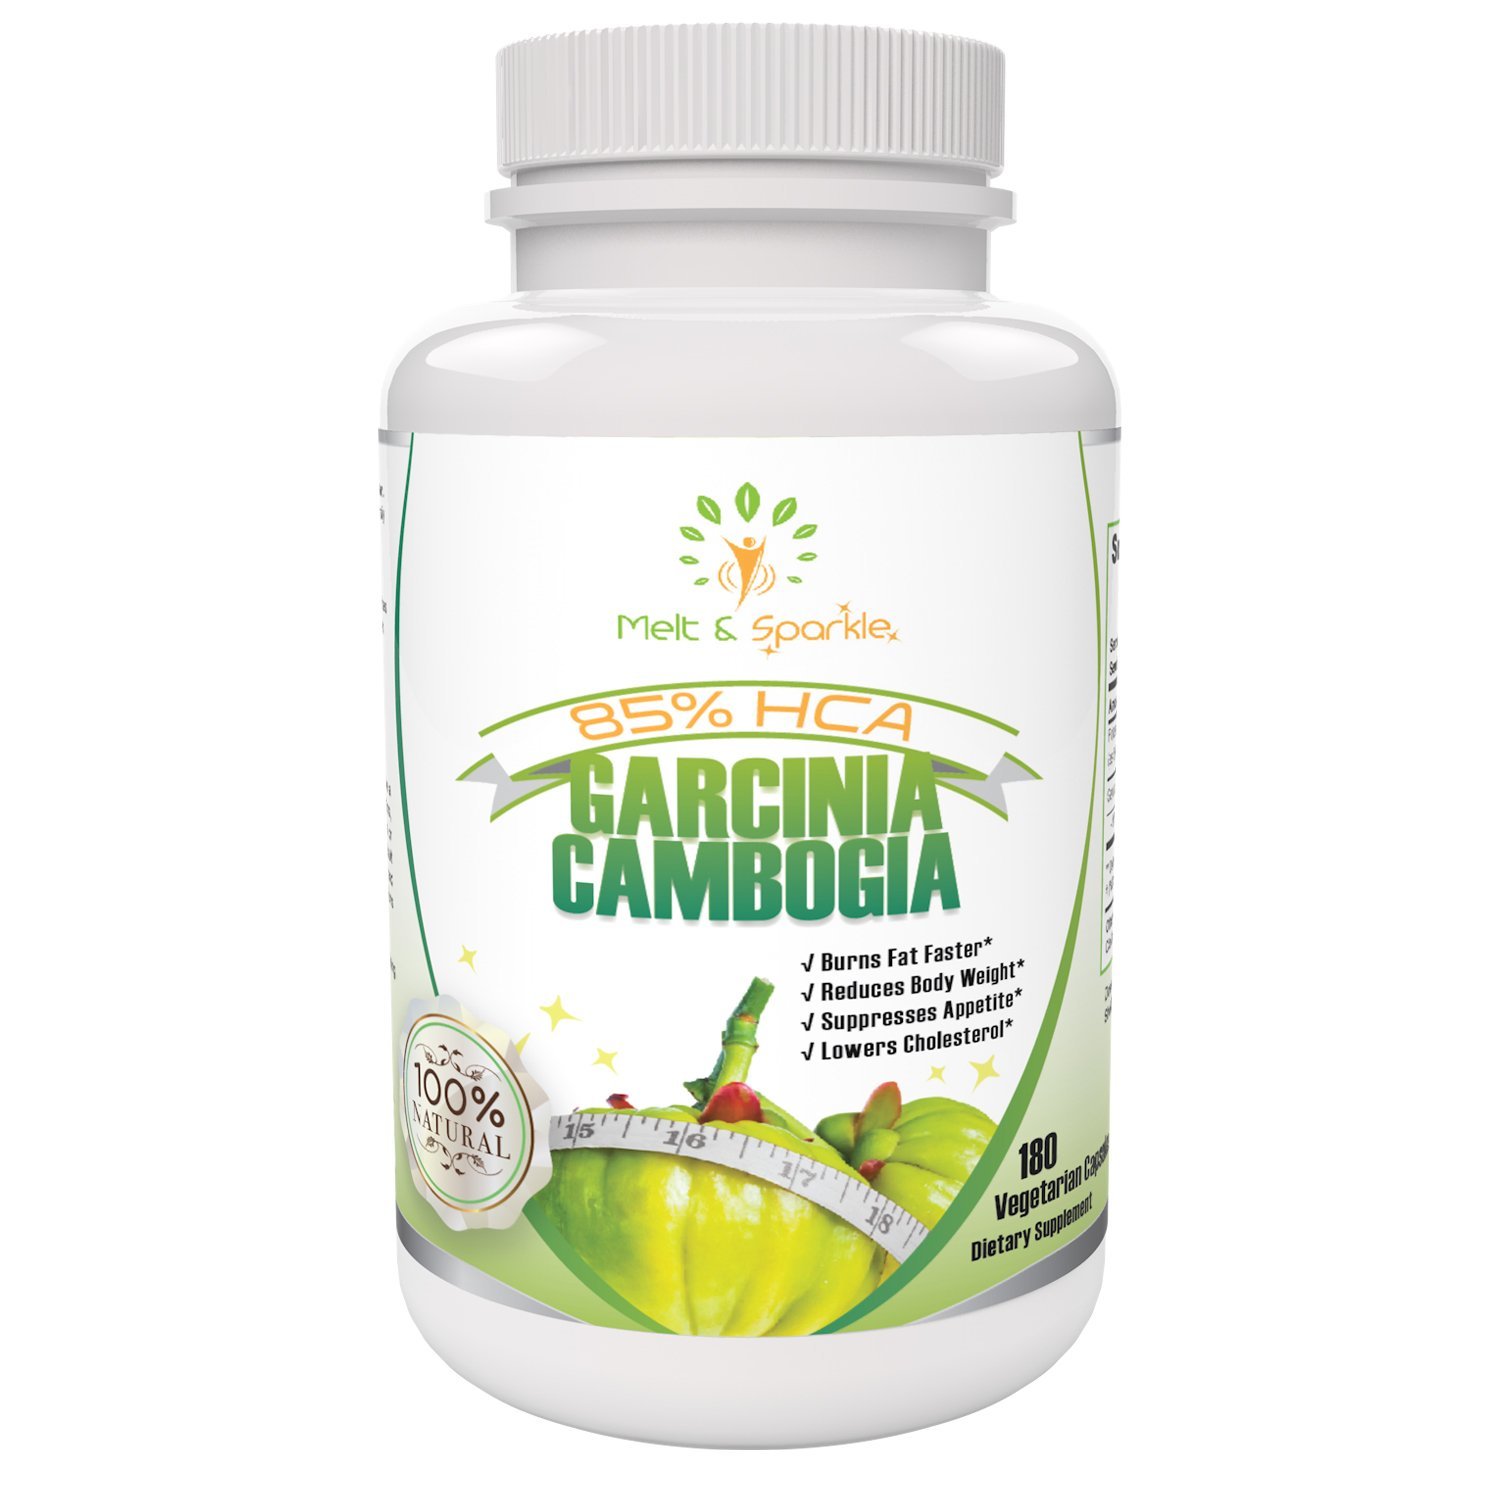 Garcinia Cambogia 85 HCA ULTRA STRENGTH -100 NATURAL Extract-WEIGHT LOSS Supplement